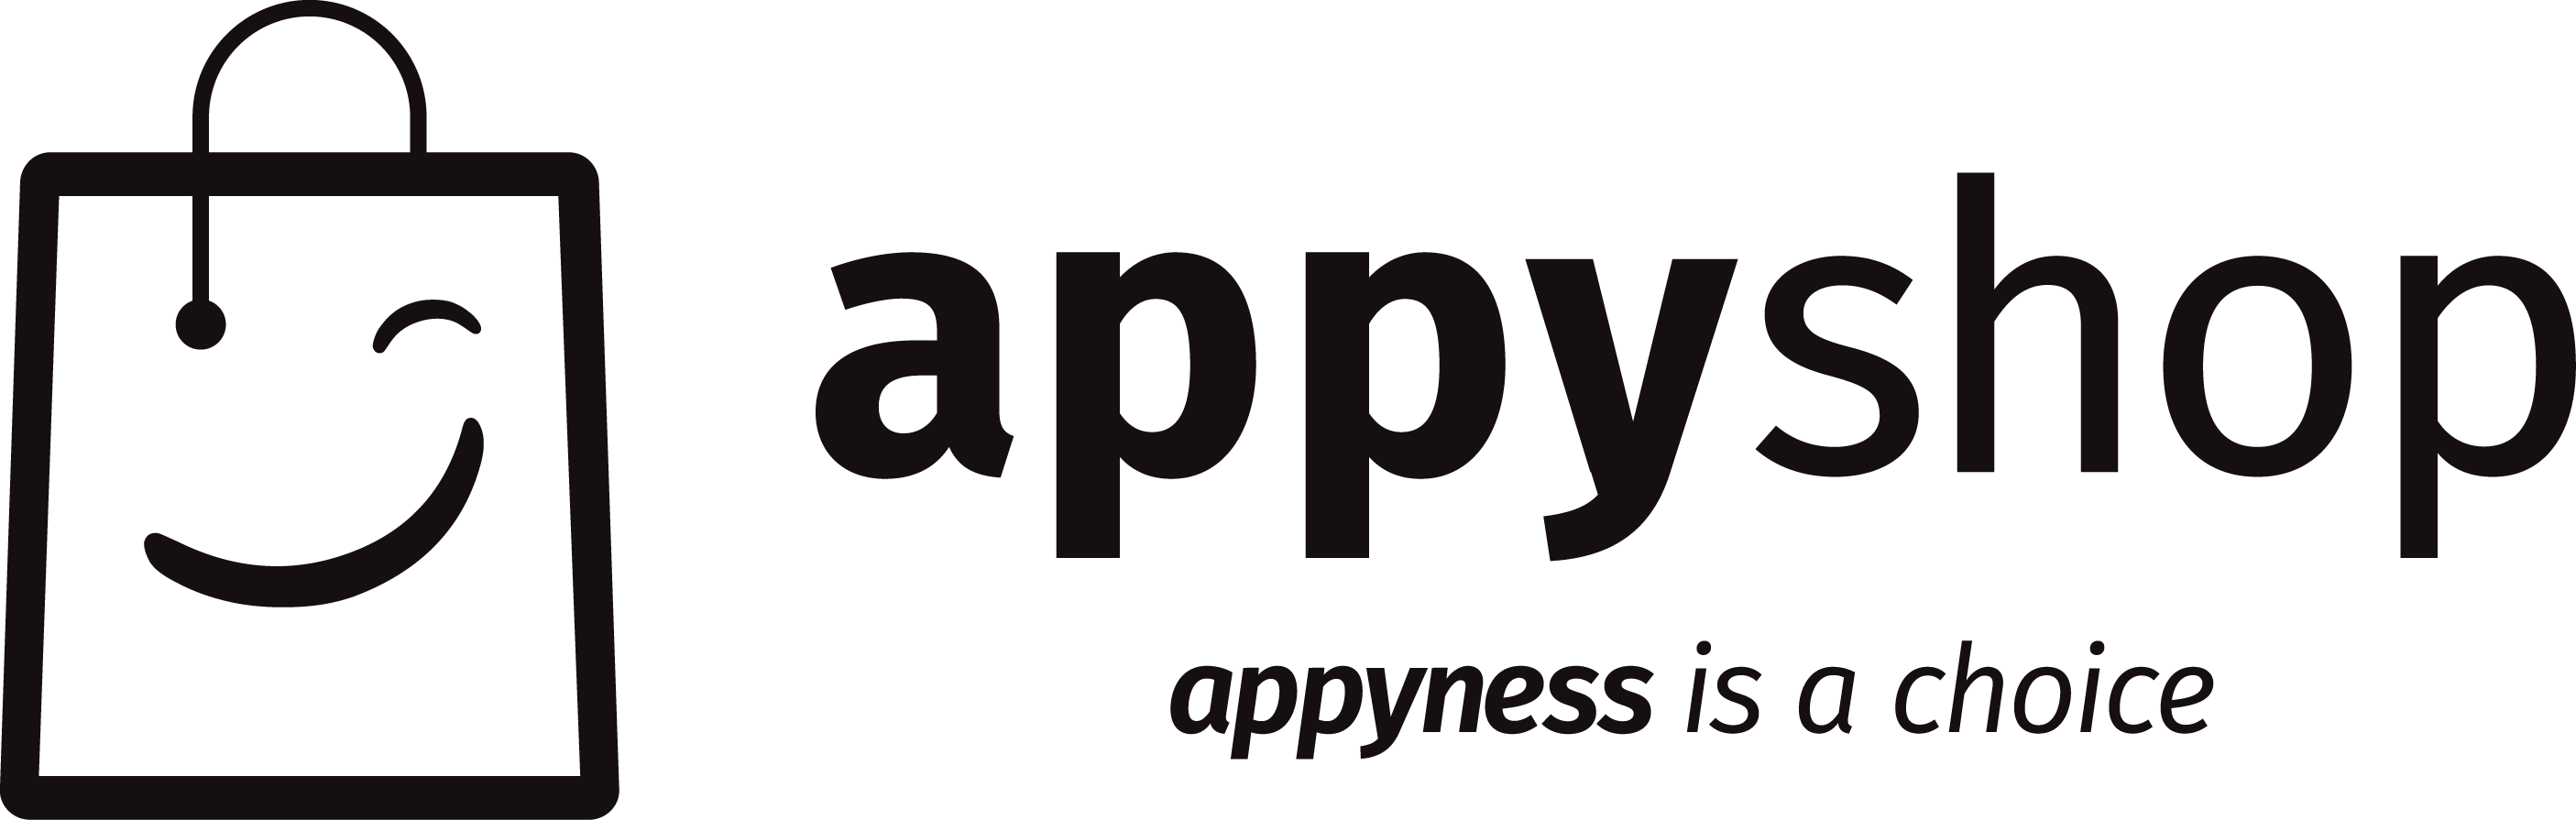 Appyness is a choice